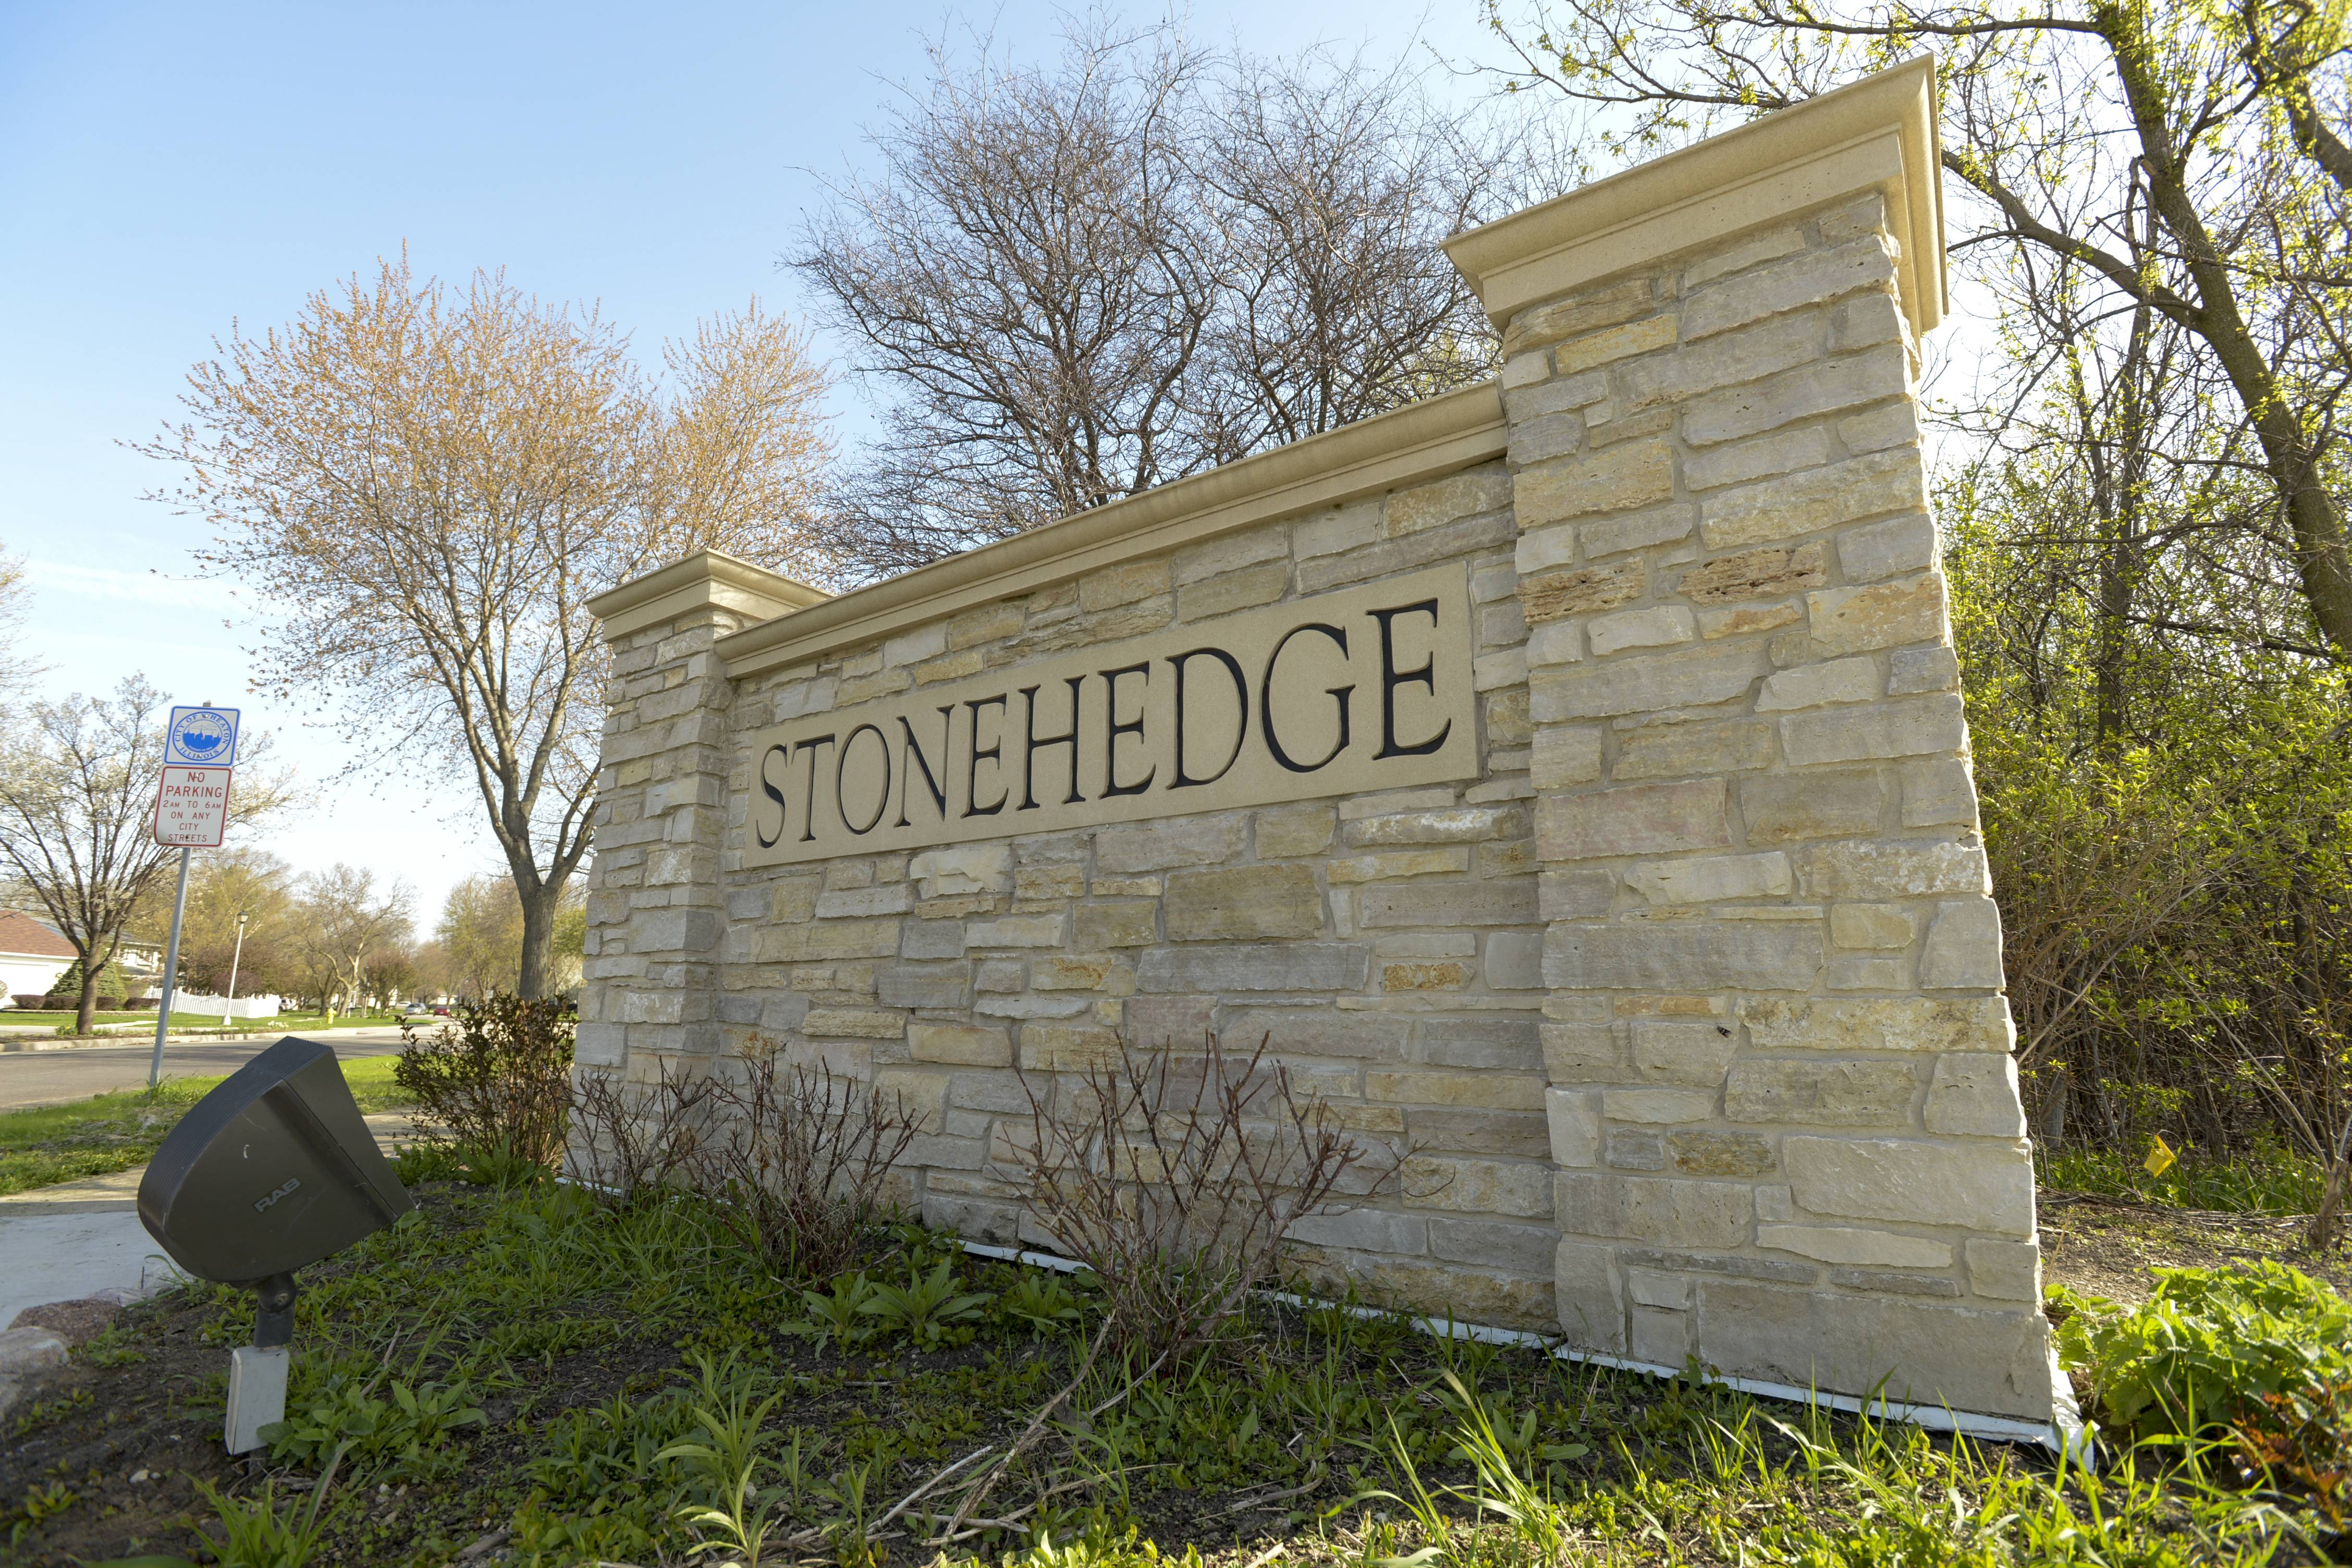 Stonehedge was built in the early 1980s by well-known homebuilders Joe and Ed Keim and Faganel Builders.